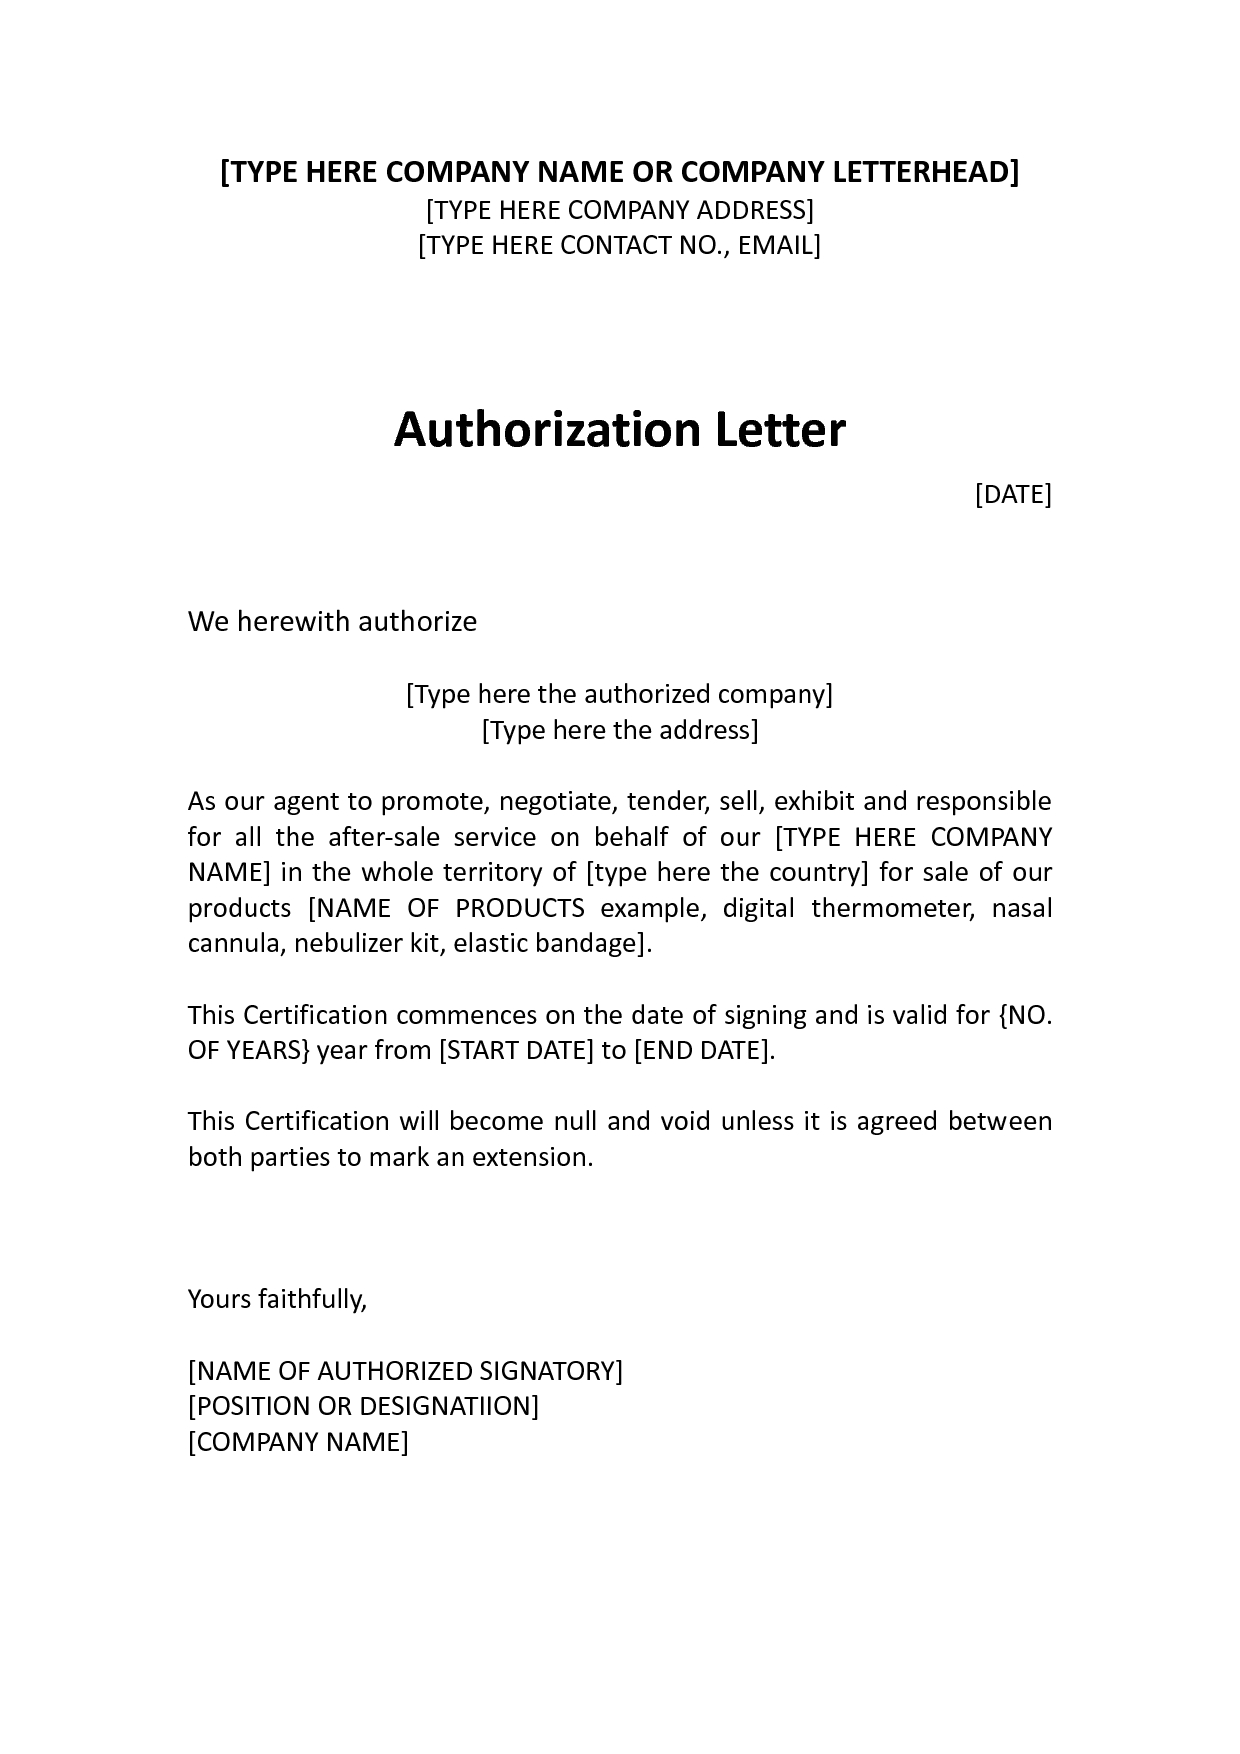 Proof Of Residency Letter Template Word - Authorization Distributor Letter Sample Distributor Dealer